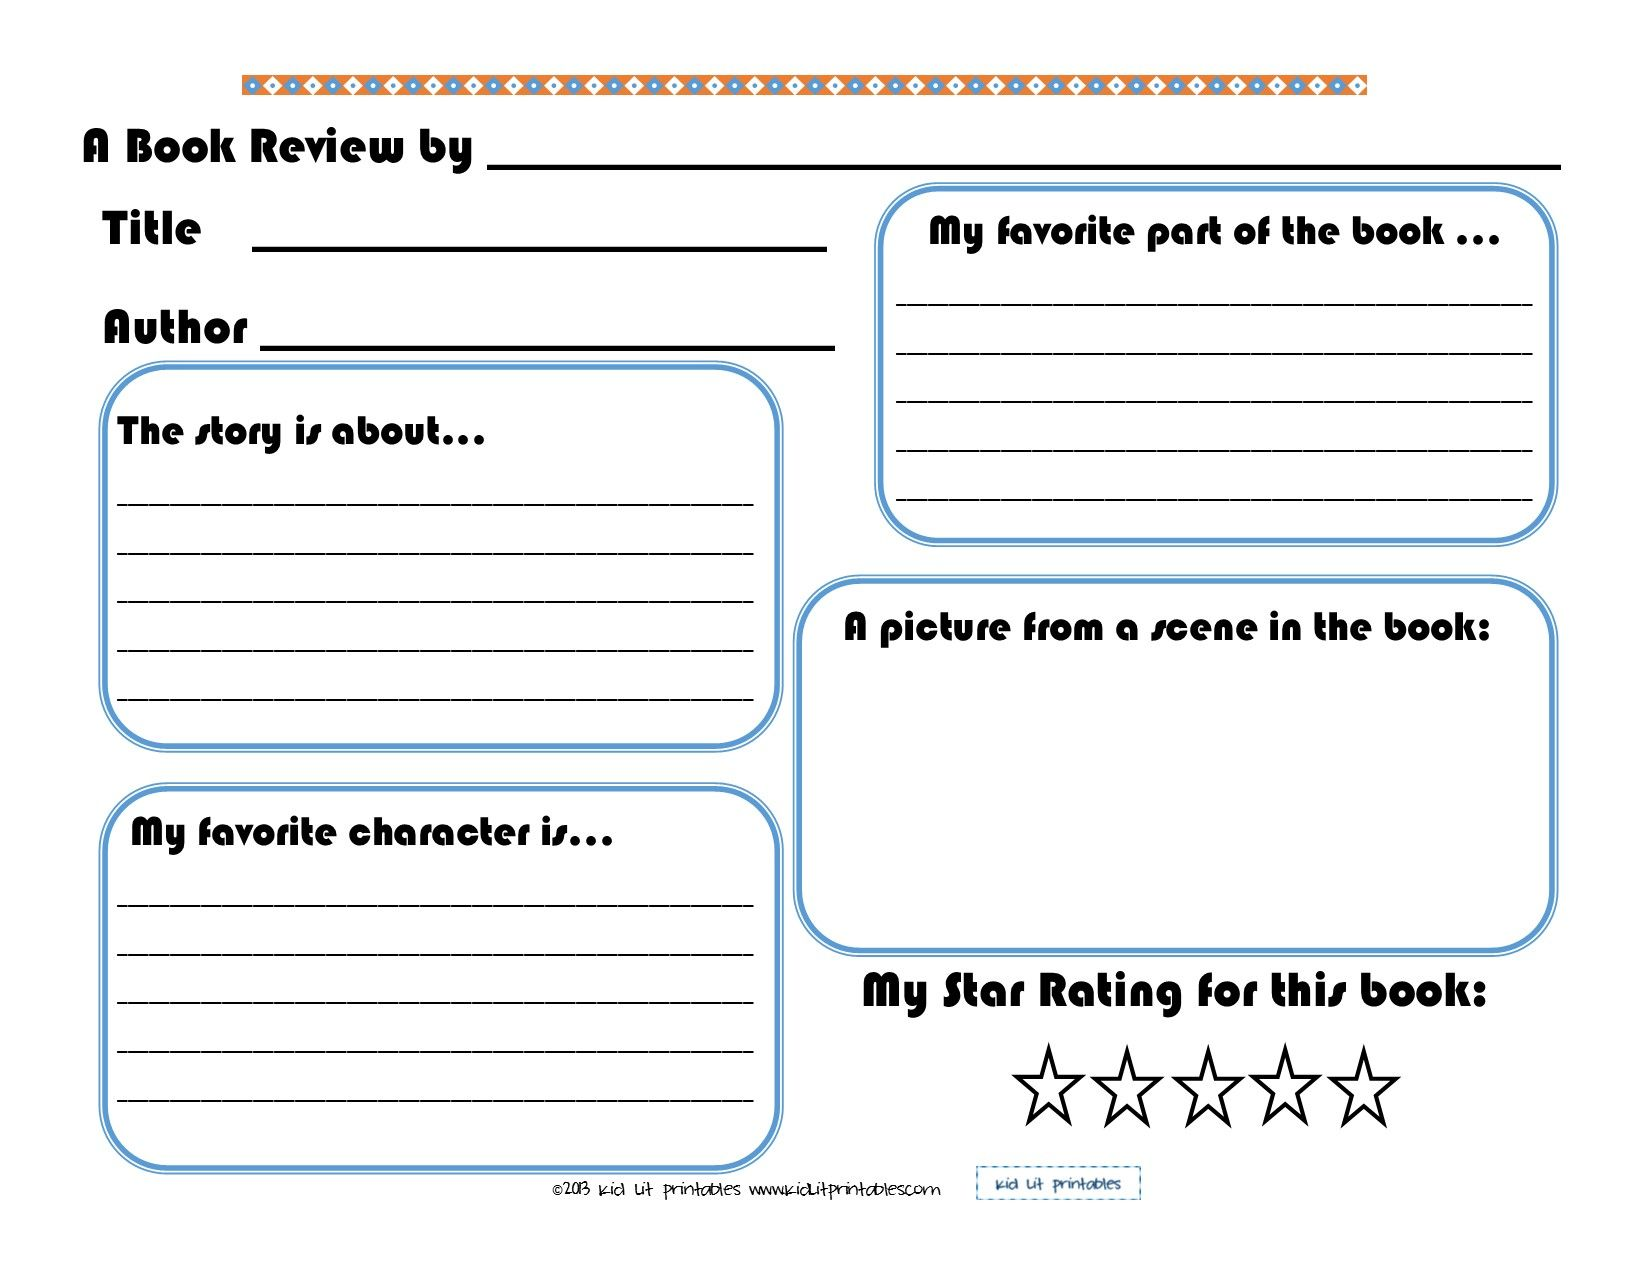 medium resolution of 3 free printable book report forms (and more) for different ages. Enjoy!   Book  report templates